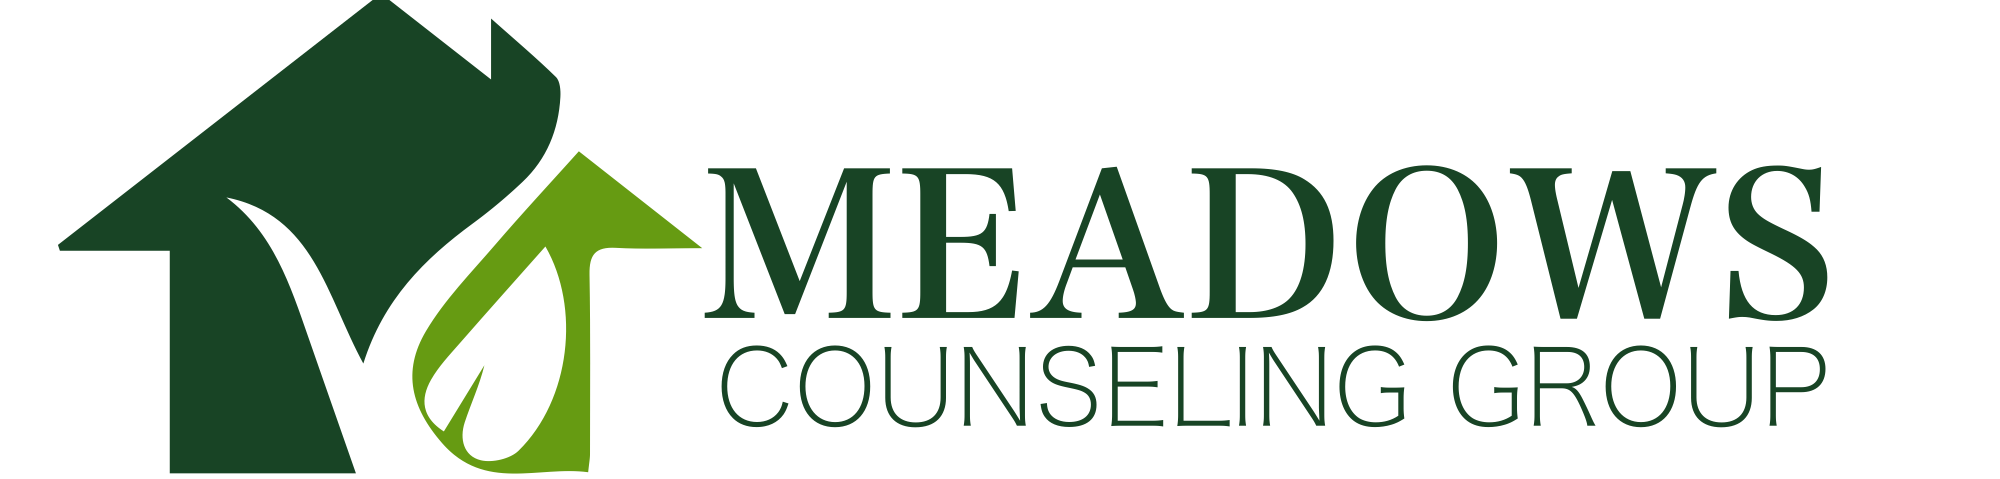 Meadows Counseling Group